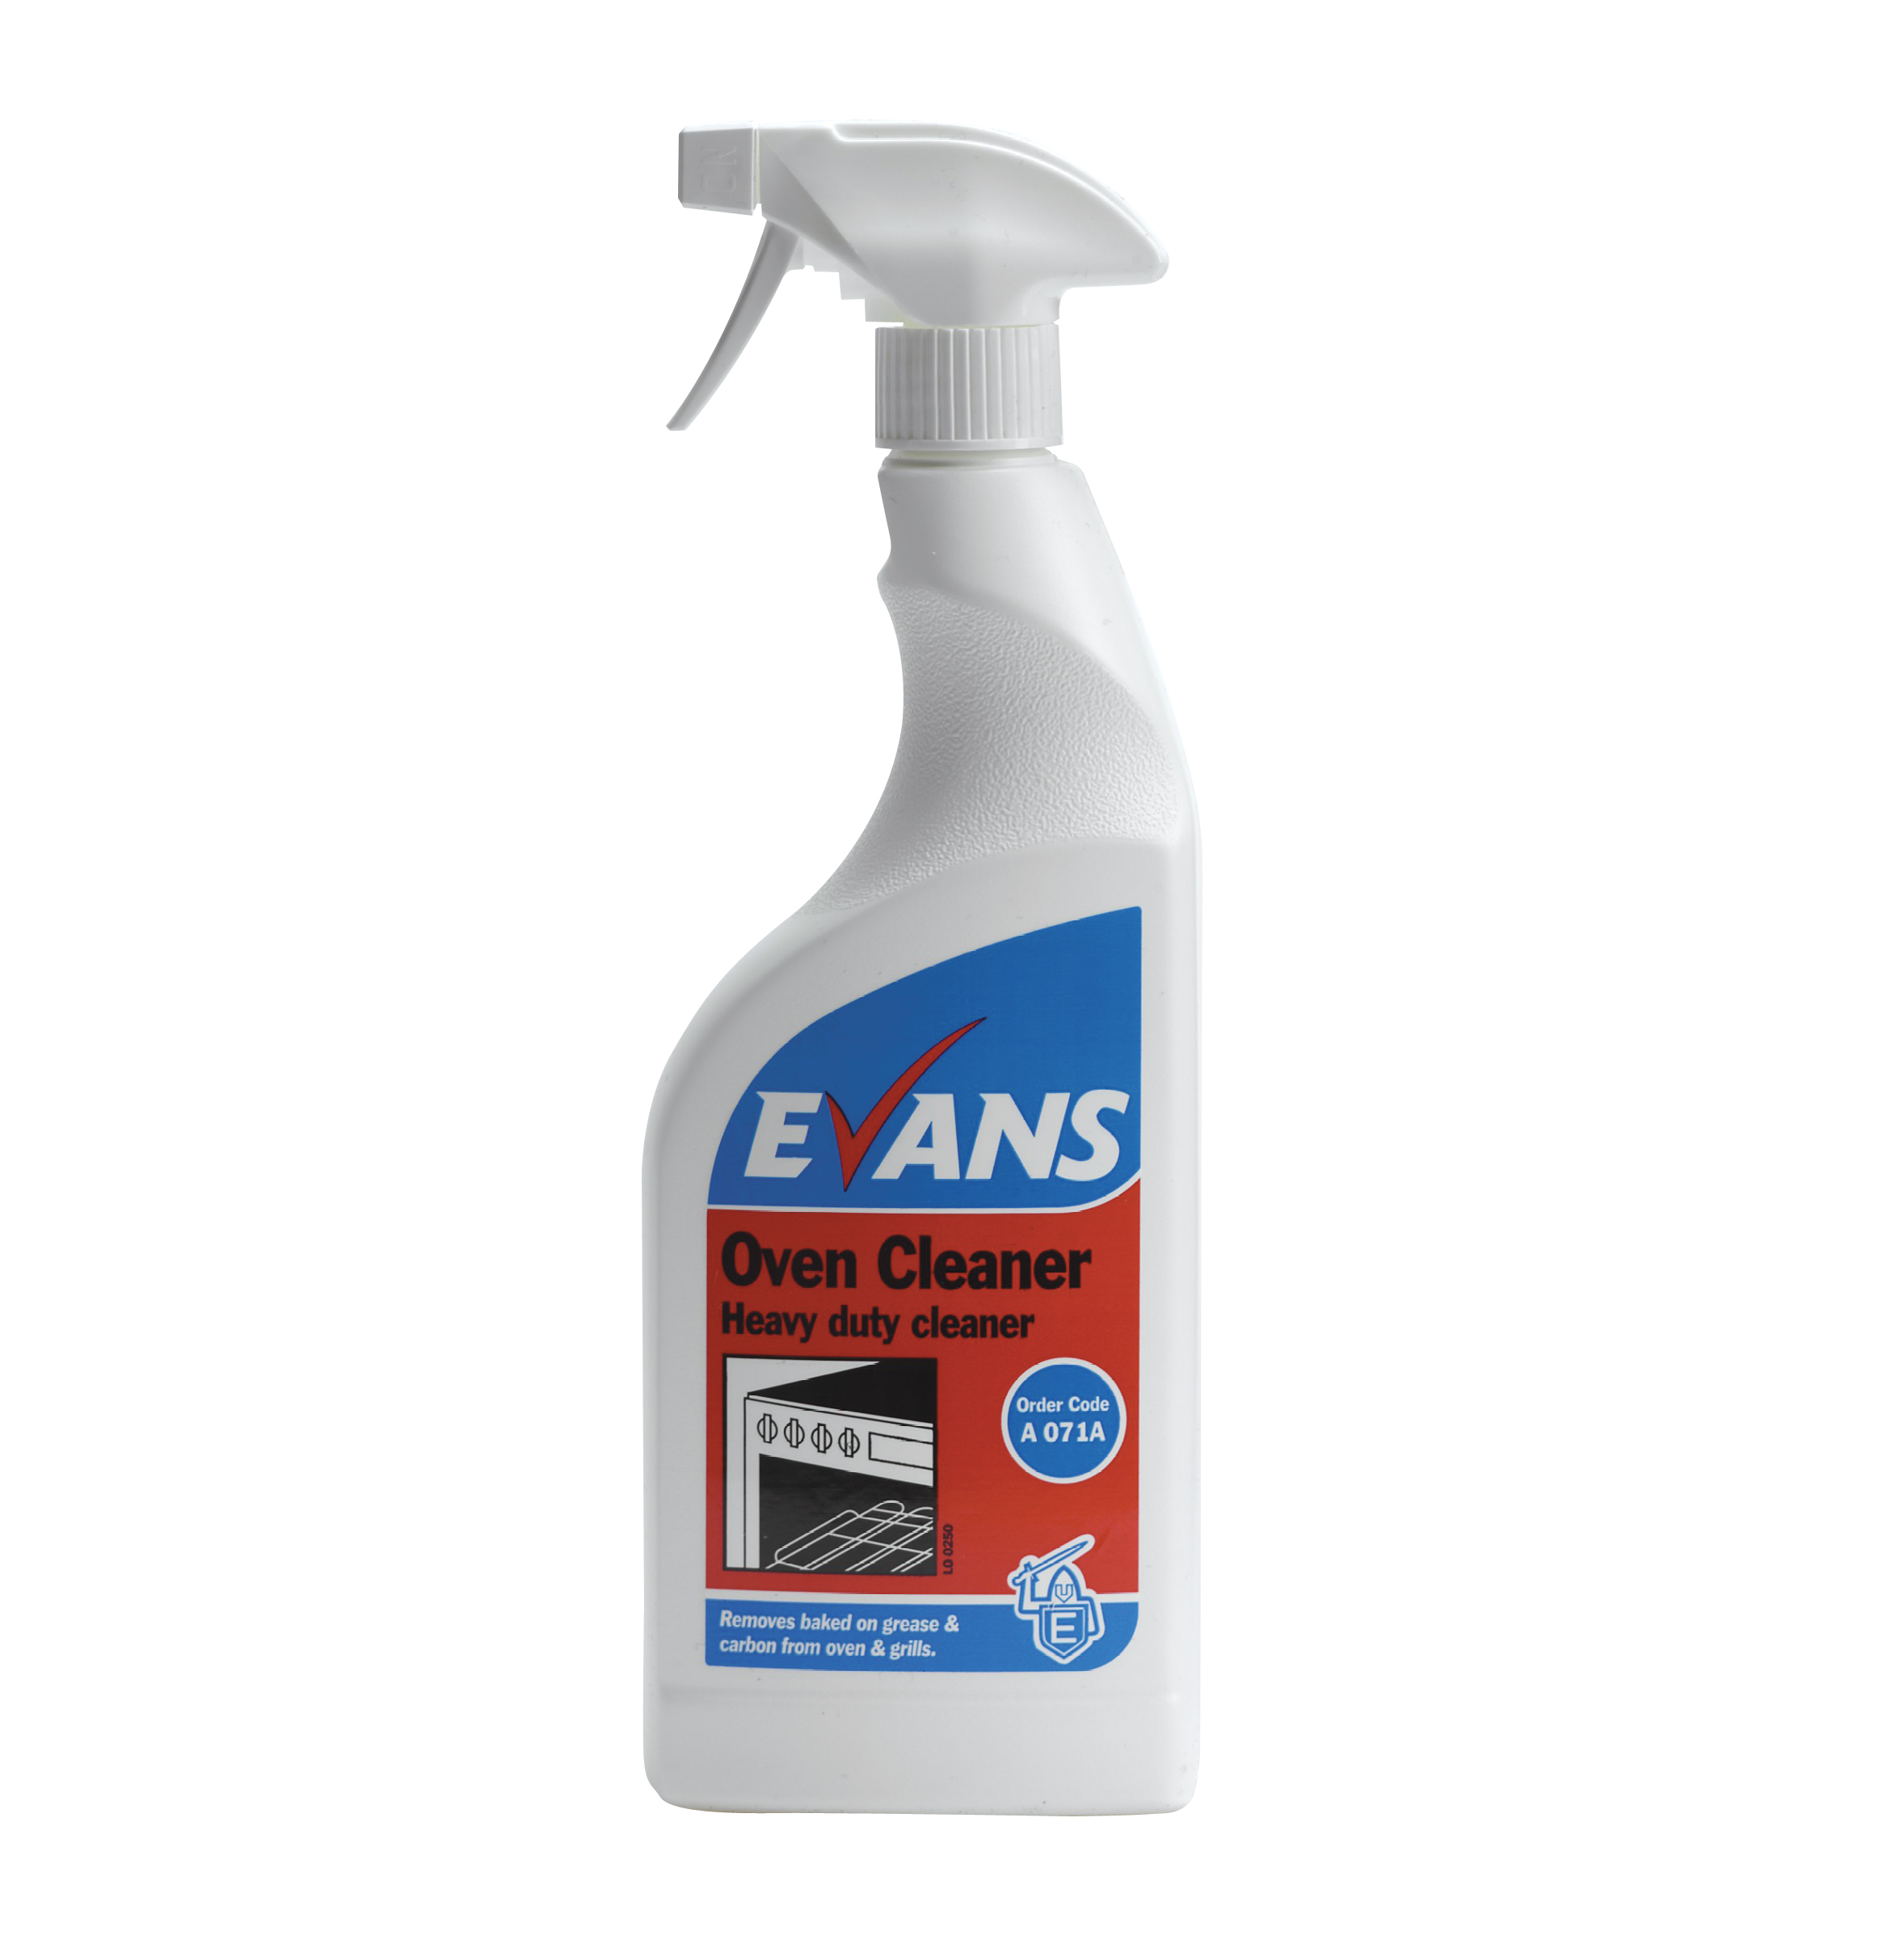 Evans Vanodine Oven Cleaner Heavy Duty And Thickened Removes Baked On Grease 750ml Rtu